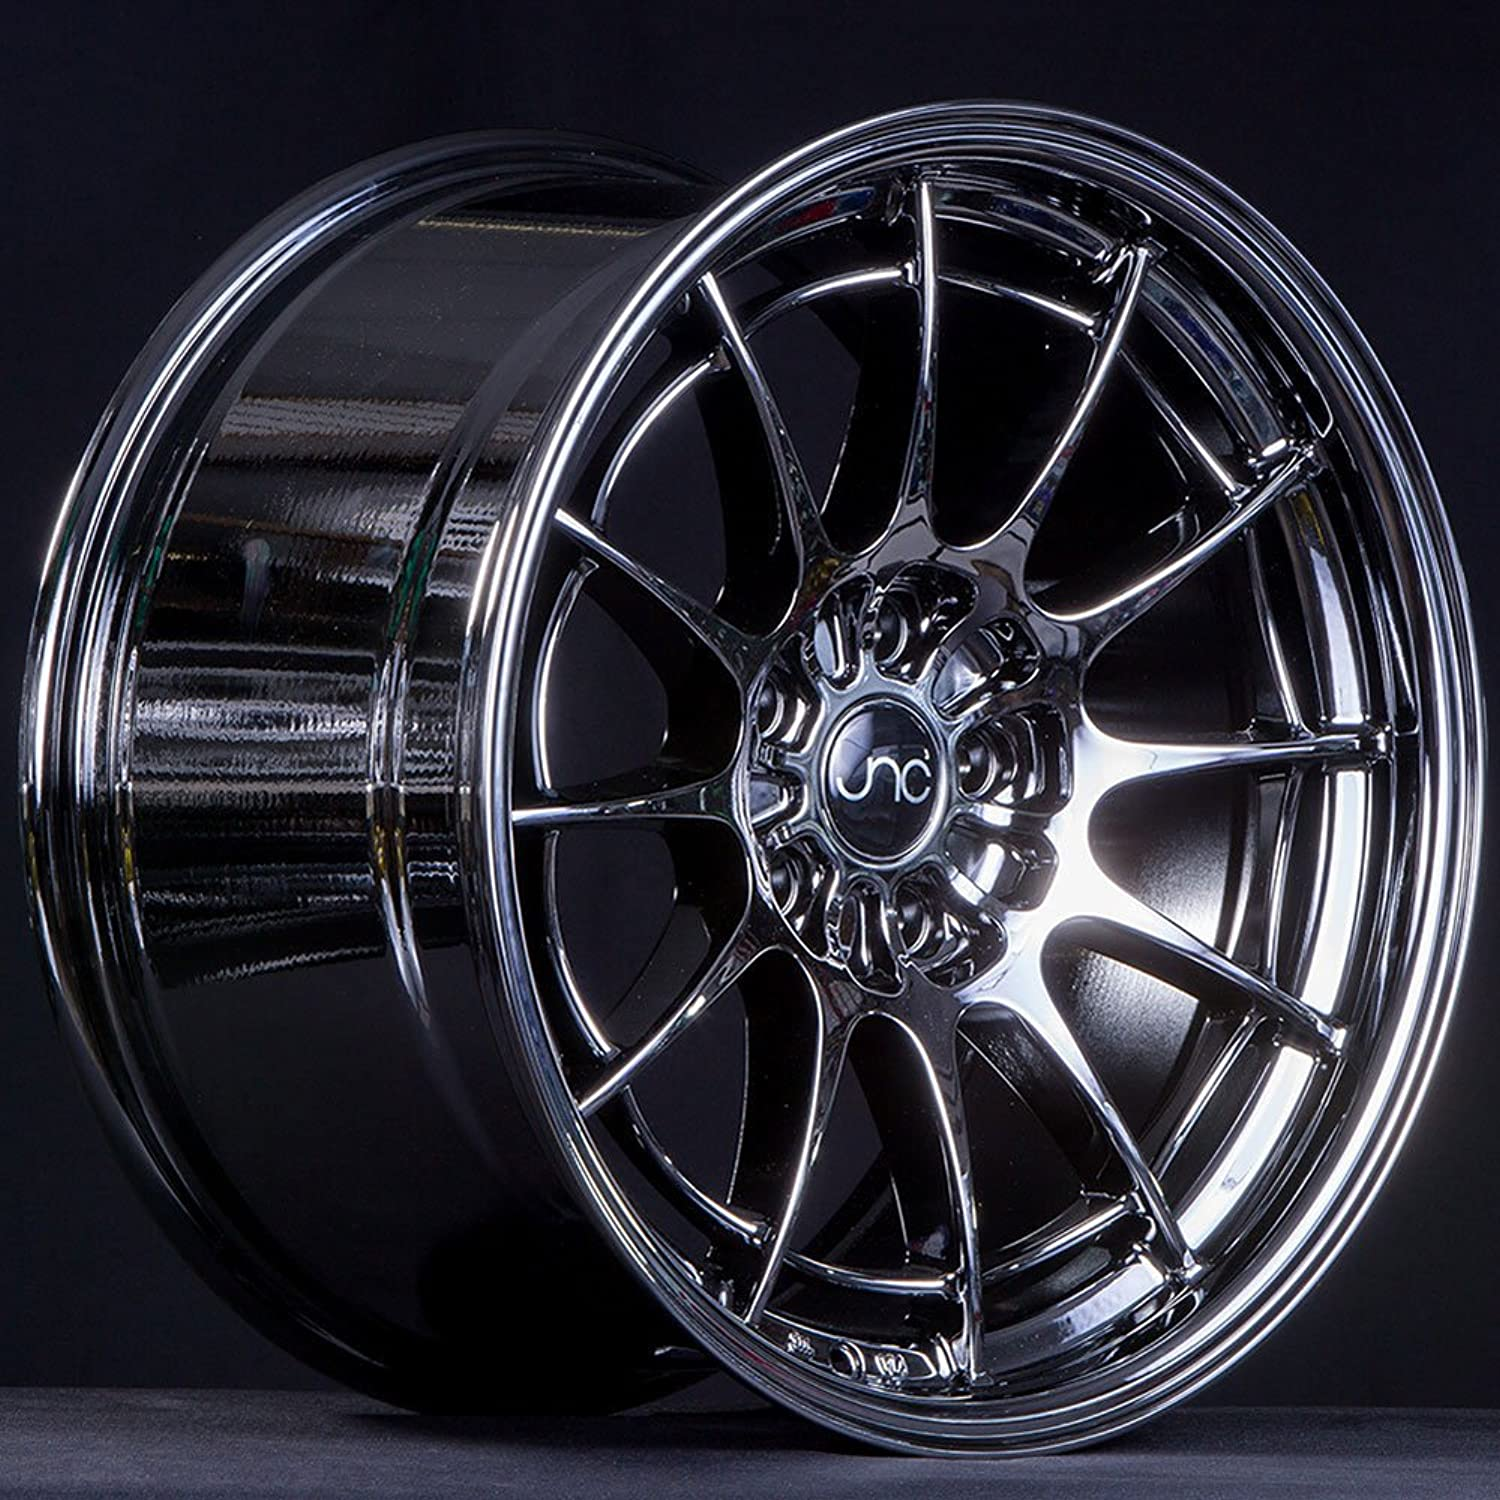 JNC Wheels  19  JNC033 Black Chrome Rim  5x120  19x11 inch